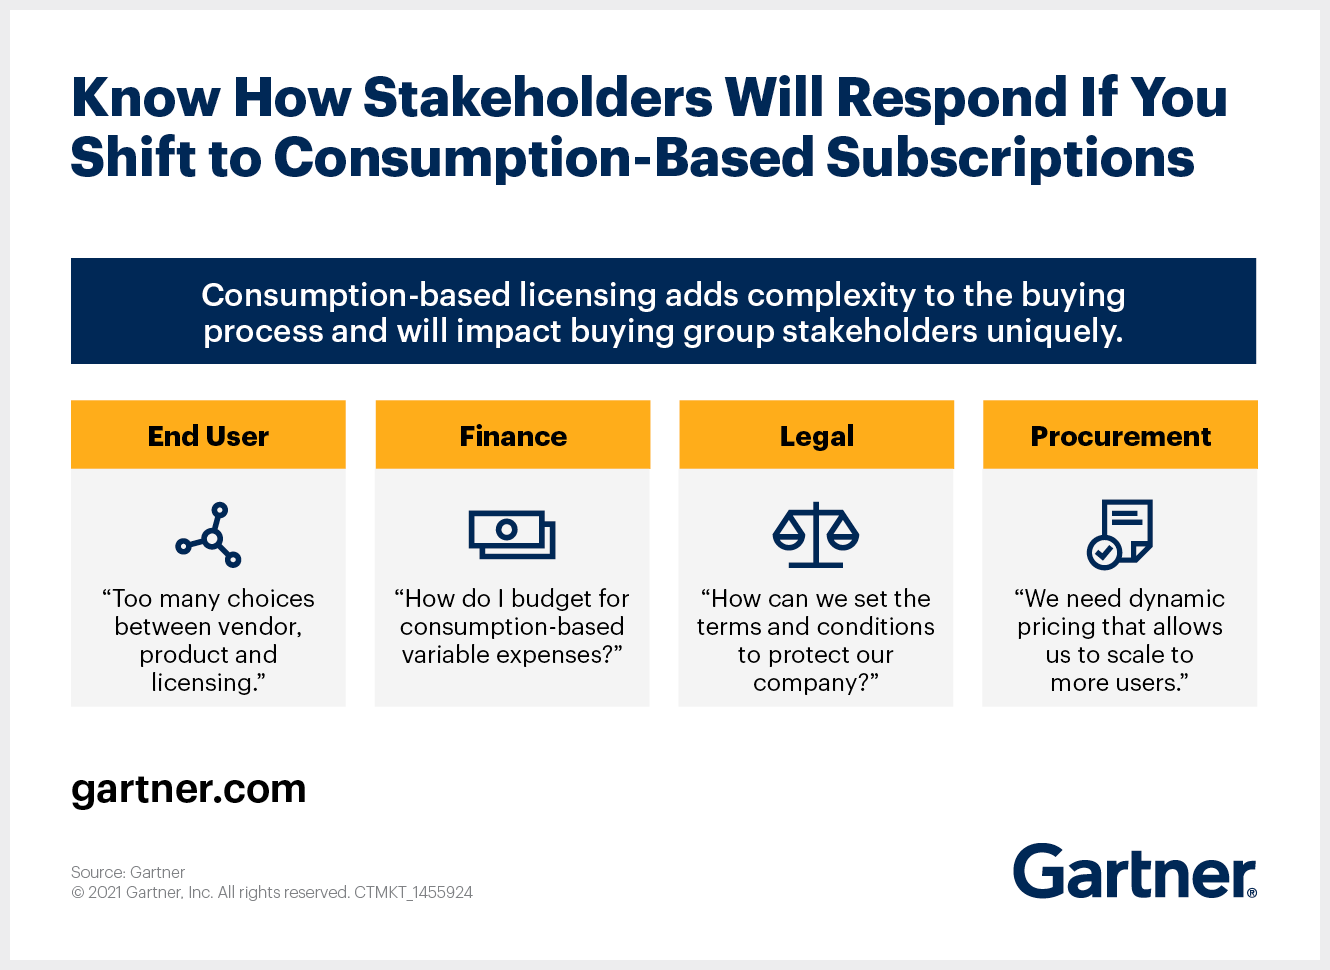 For sales leaders planning to shift their sales model to consumption-based subscriptions, it's key to know how key stakeholders might respond.